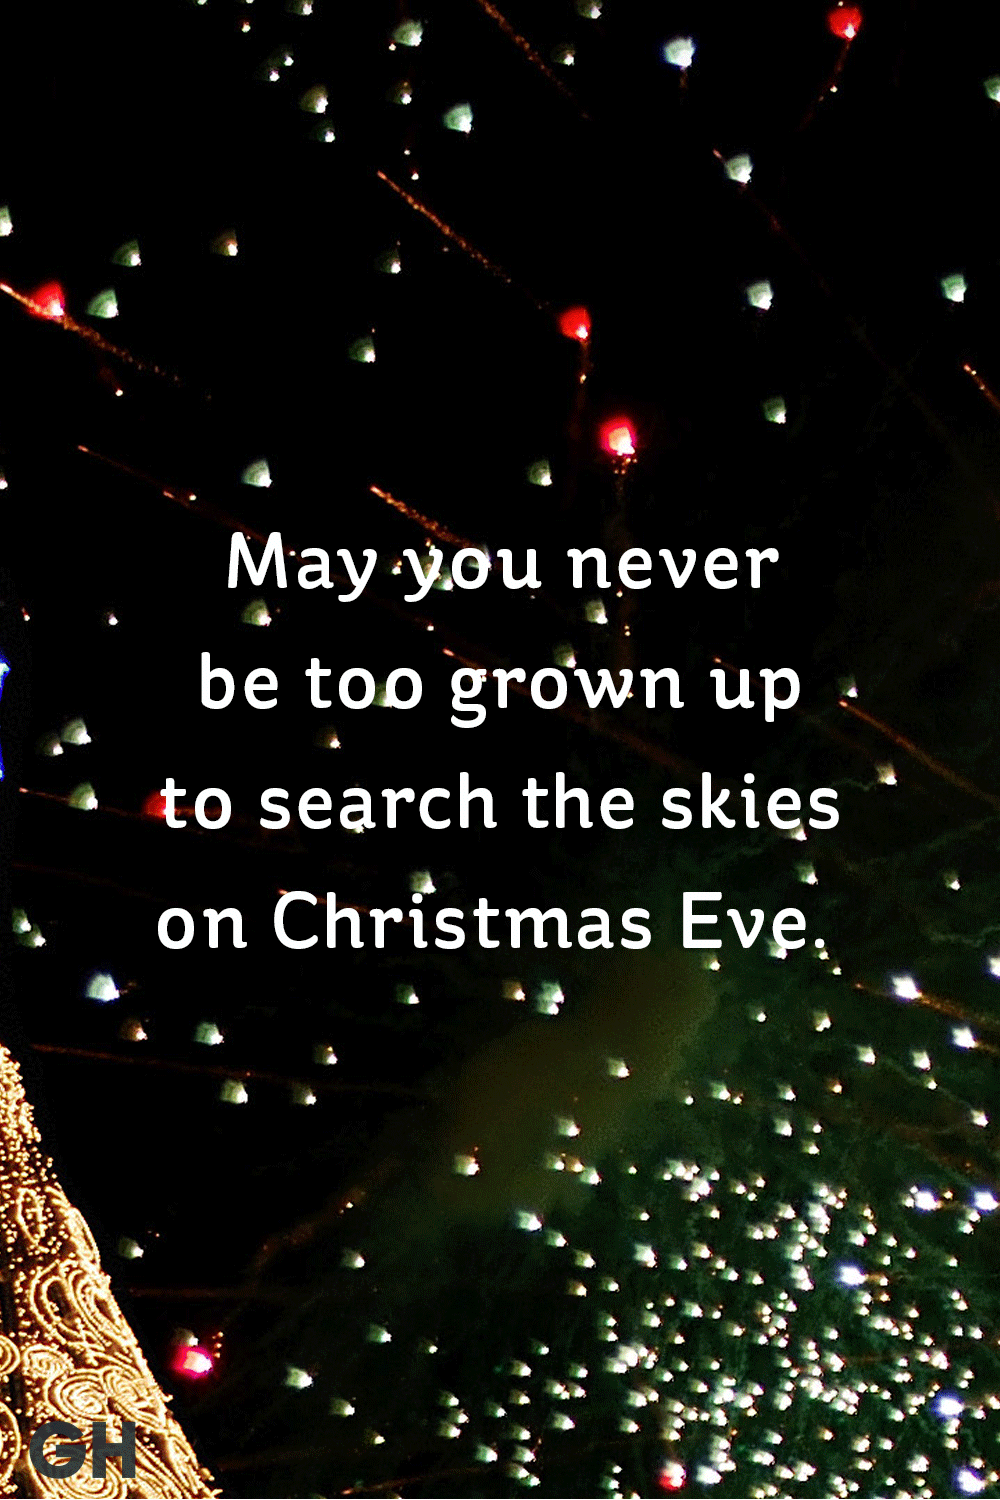 These Festive Christmas Quotes Will Get You in the Holiday ...